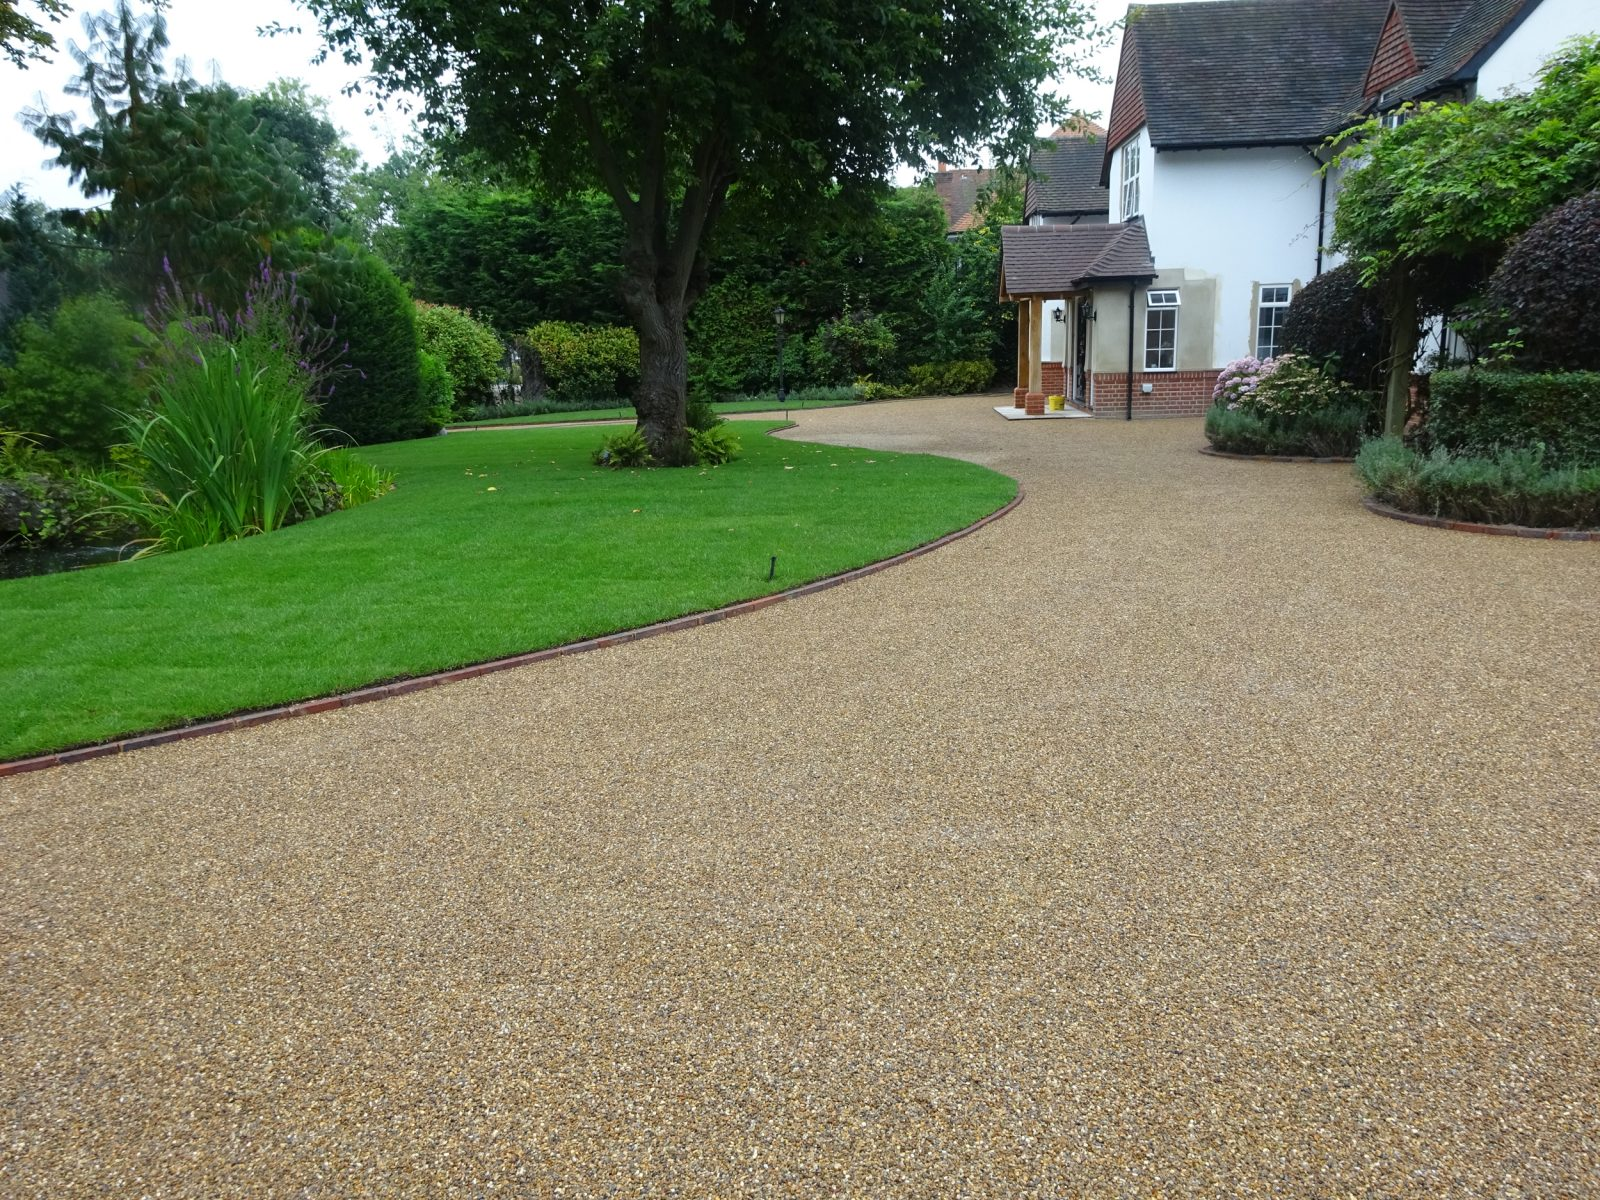 Penfold Driveways Specialists in hot tar & coloured driveways